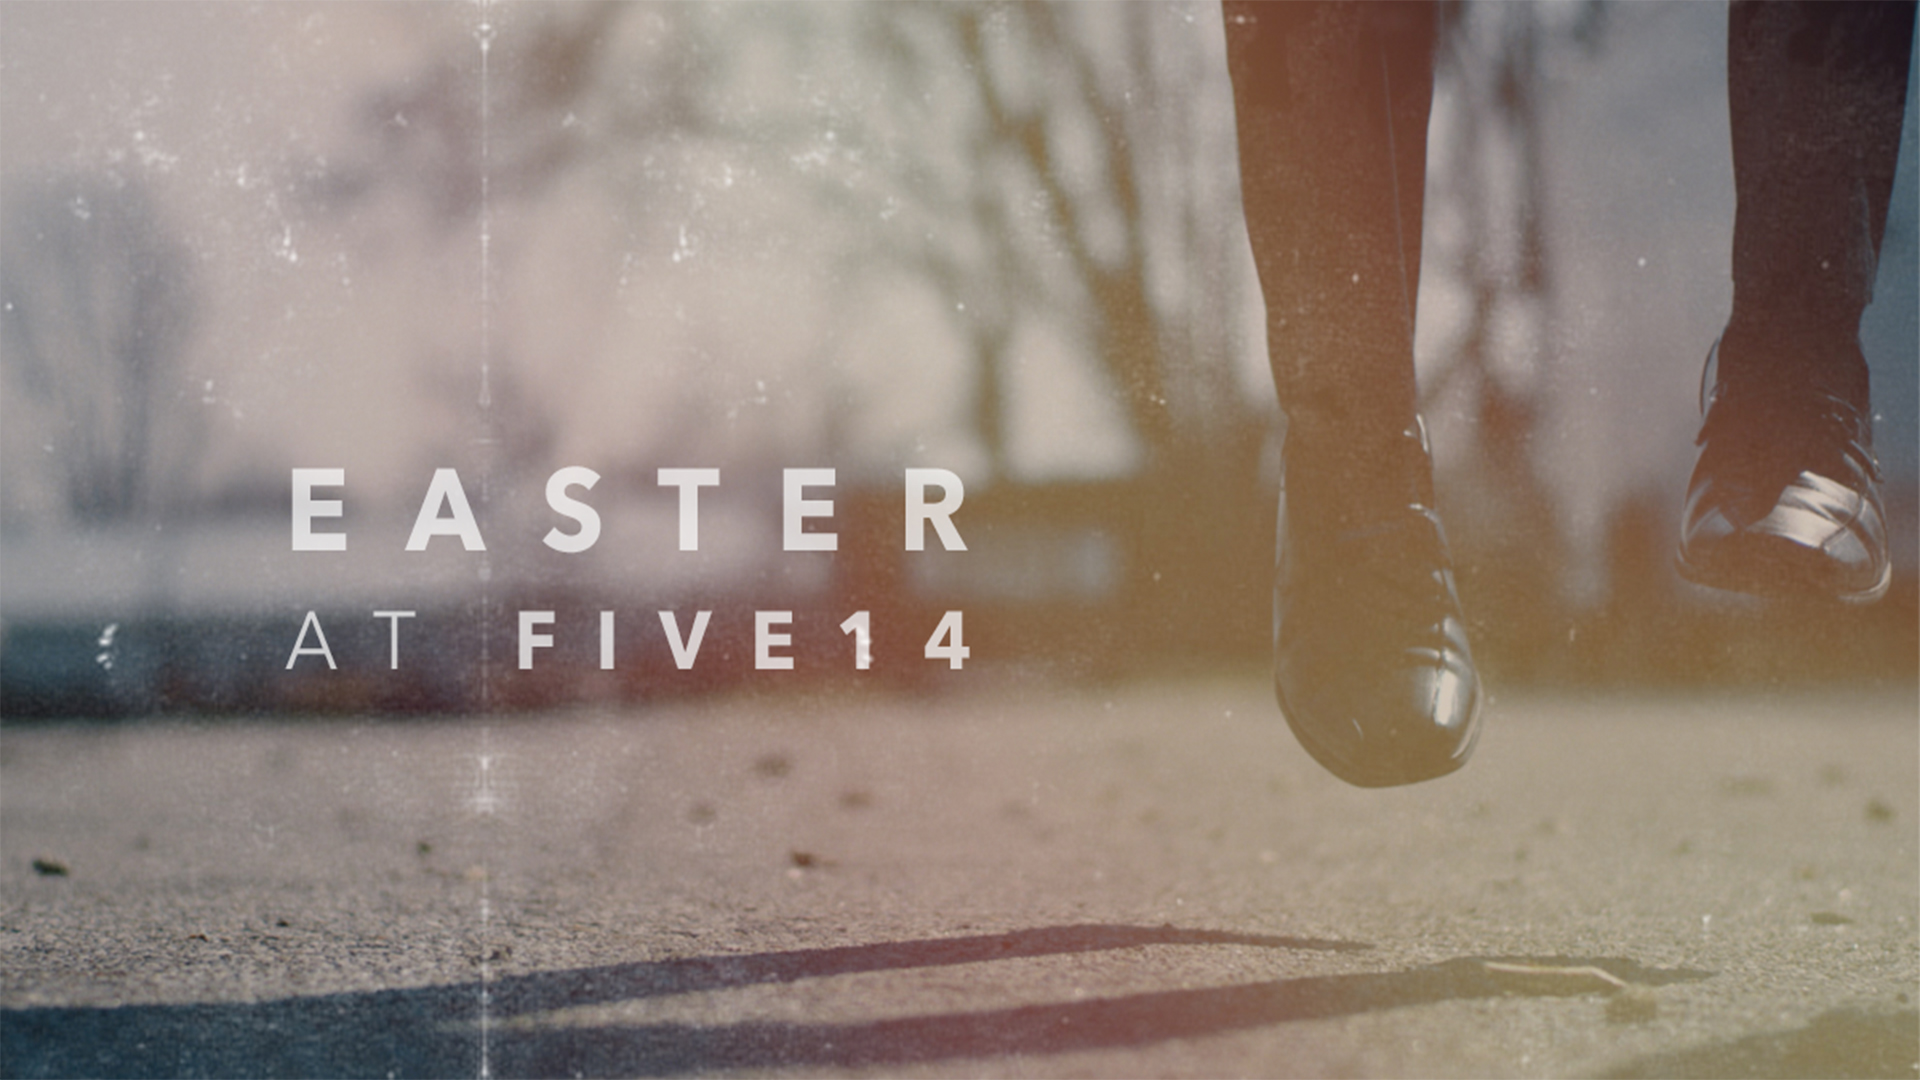 Easter at Five14